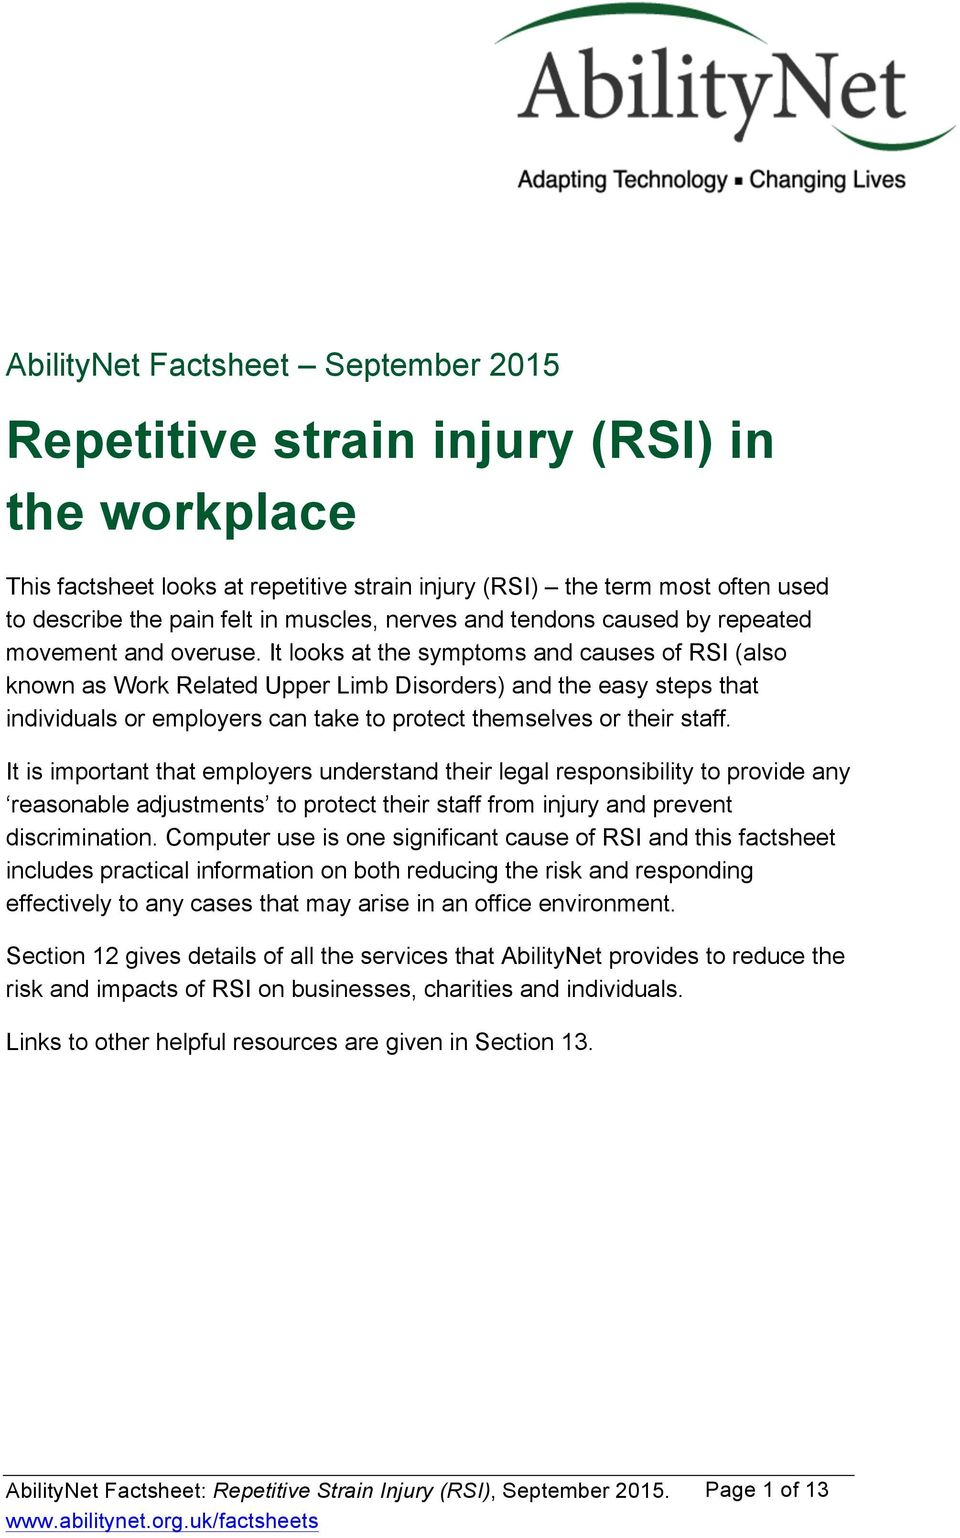 It looks at the symptoms and causes of RSI (also known as Work Related Upper Limb Disorders) and the easy steps that individuals or employers can take to protect themselves or their staff.